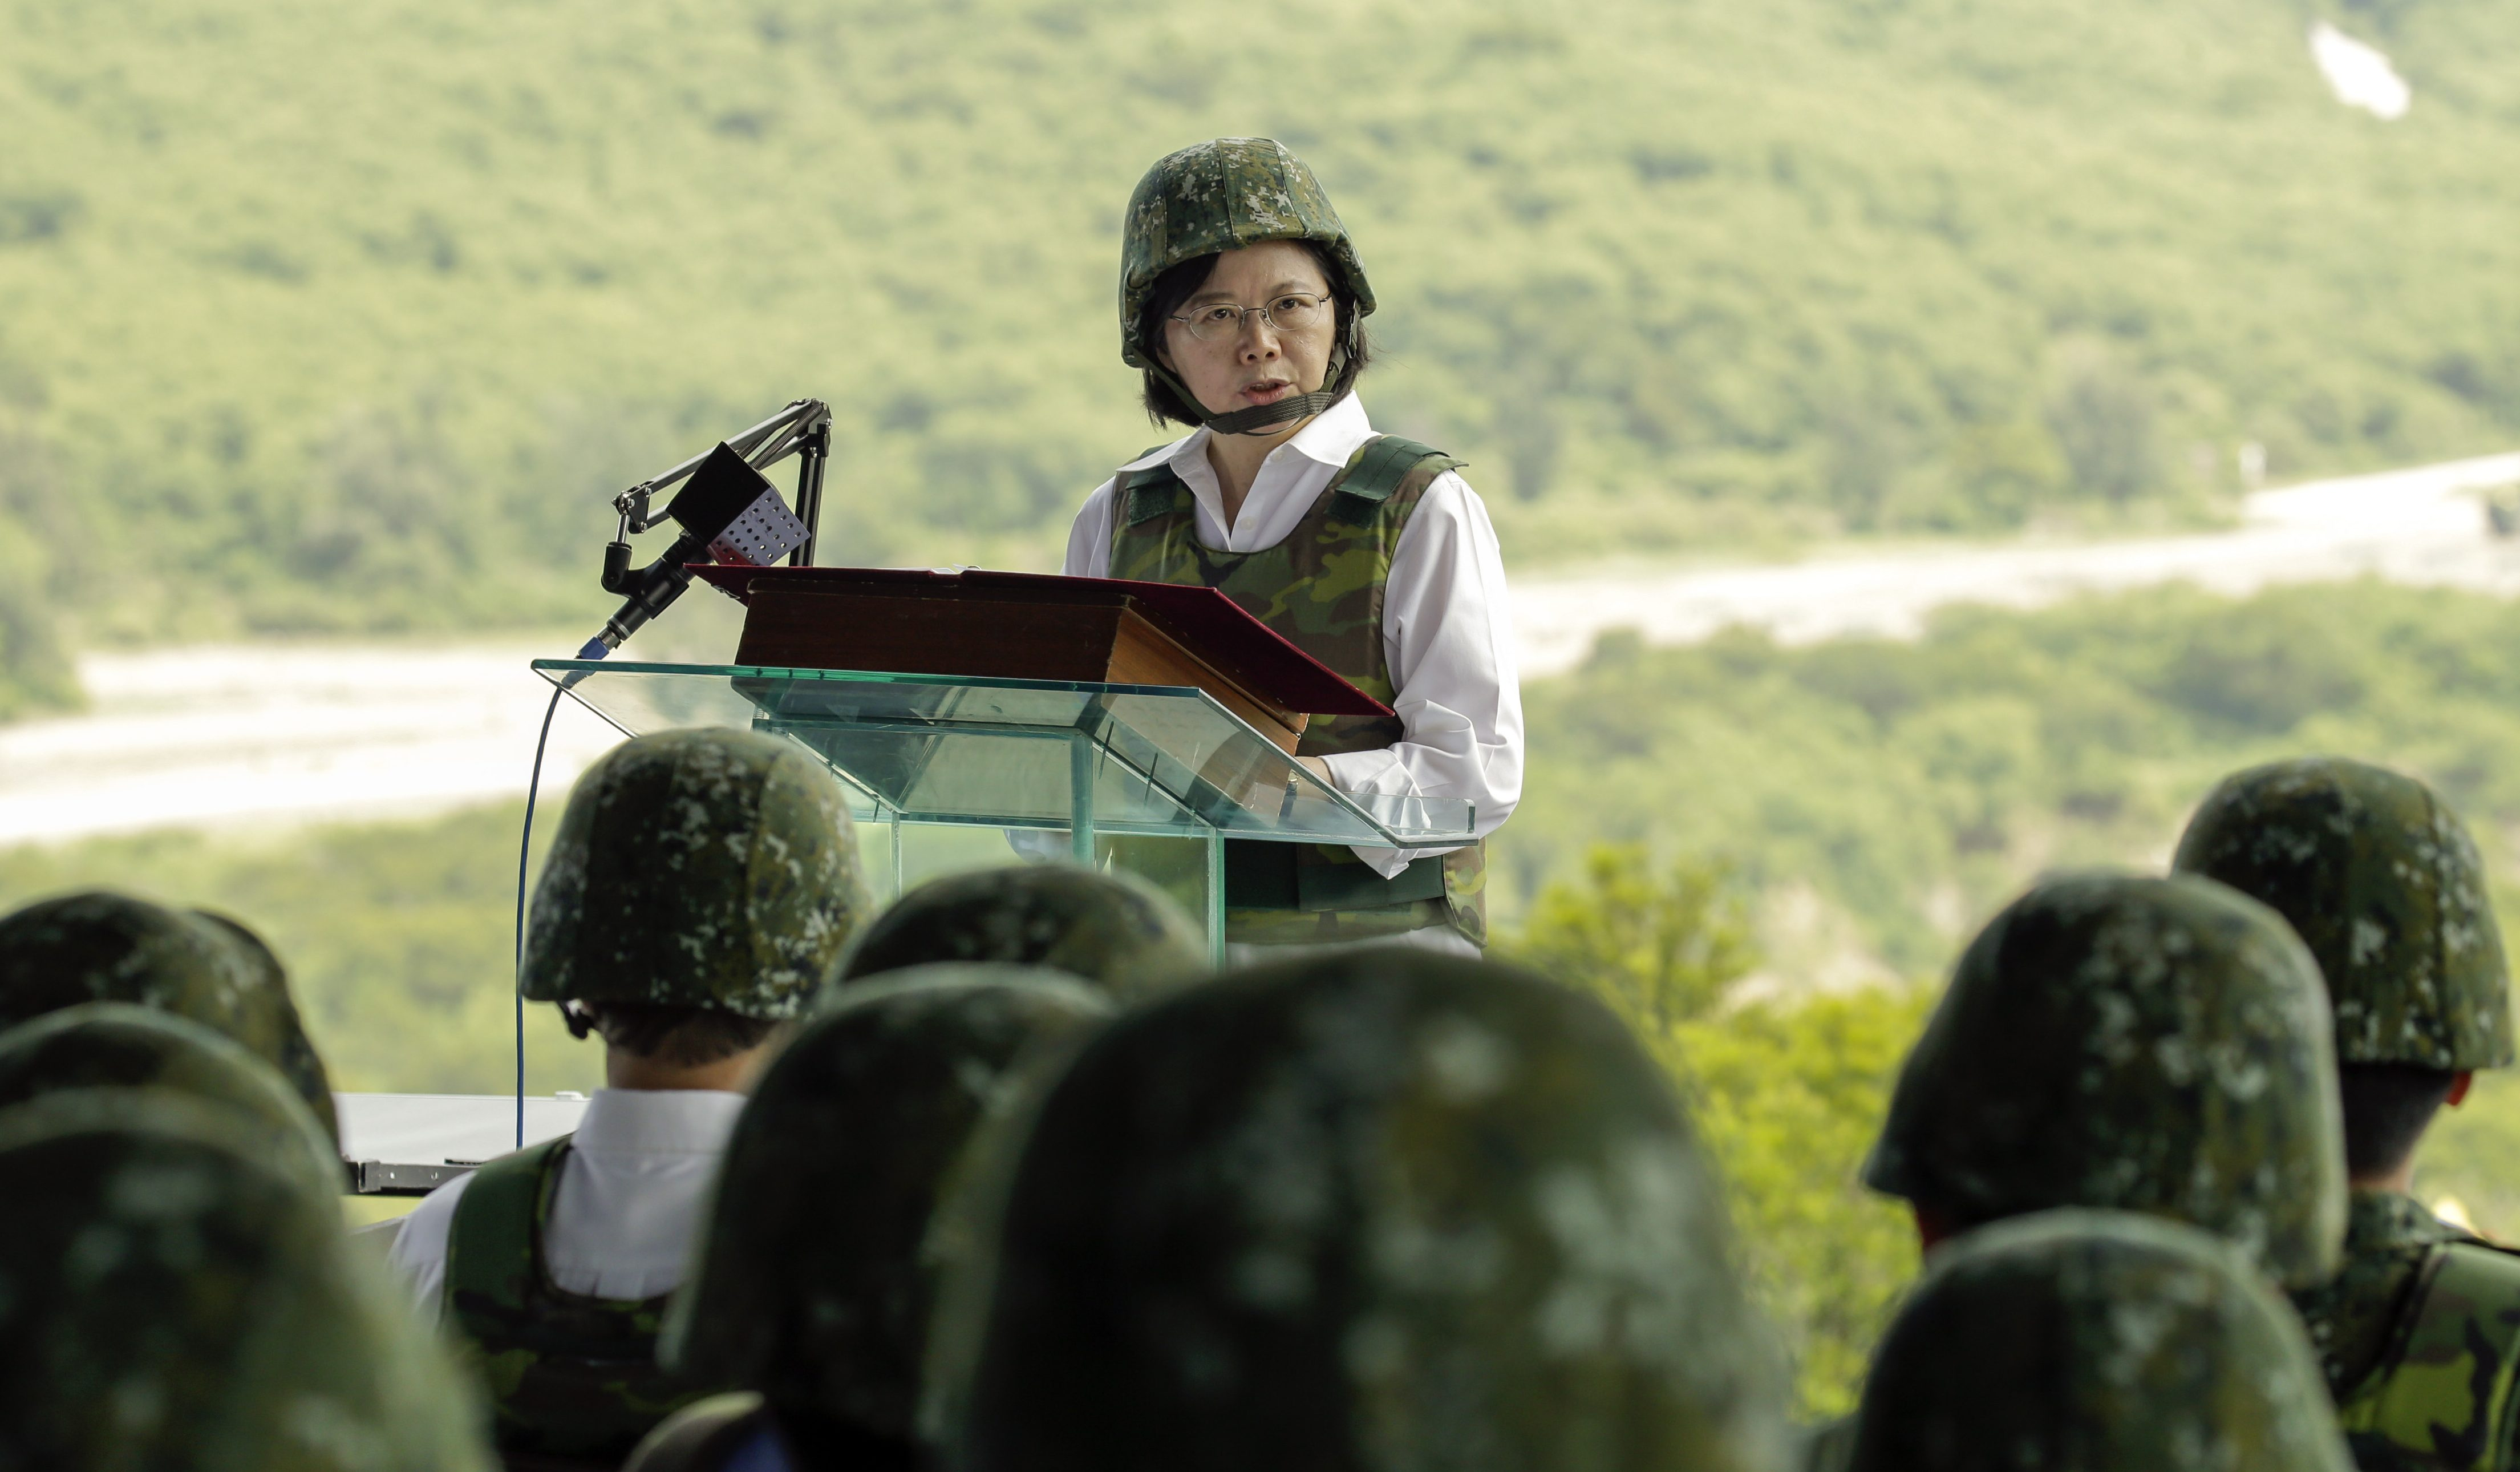 Taiwan's President Tsai Ing-wen speaks to Taiwanese army soldiers during a military exercise in Pingtung County, Taiwan, 25 August 2016.